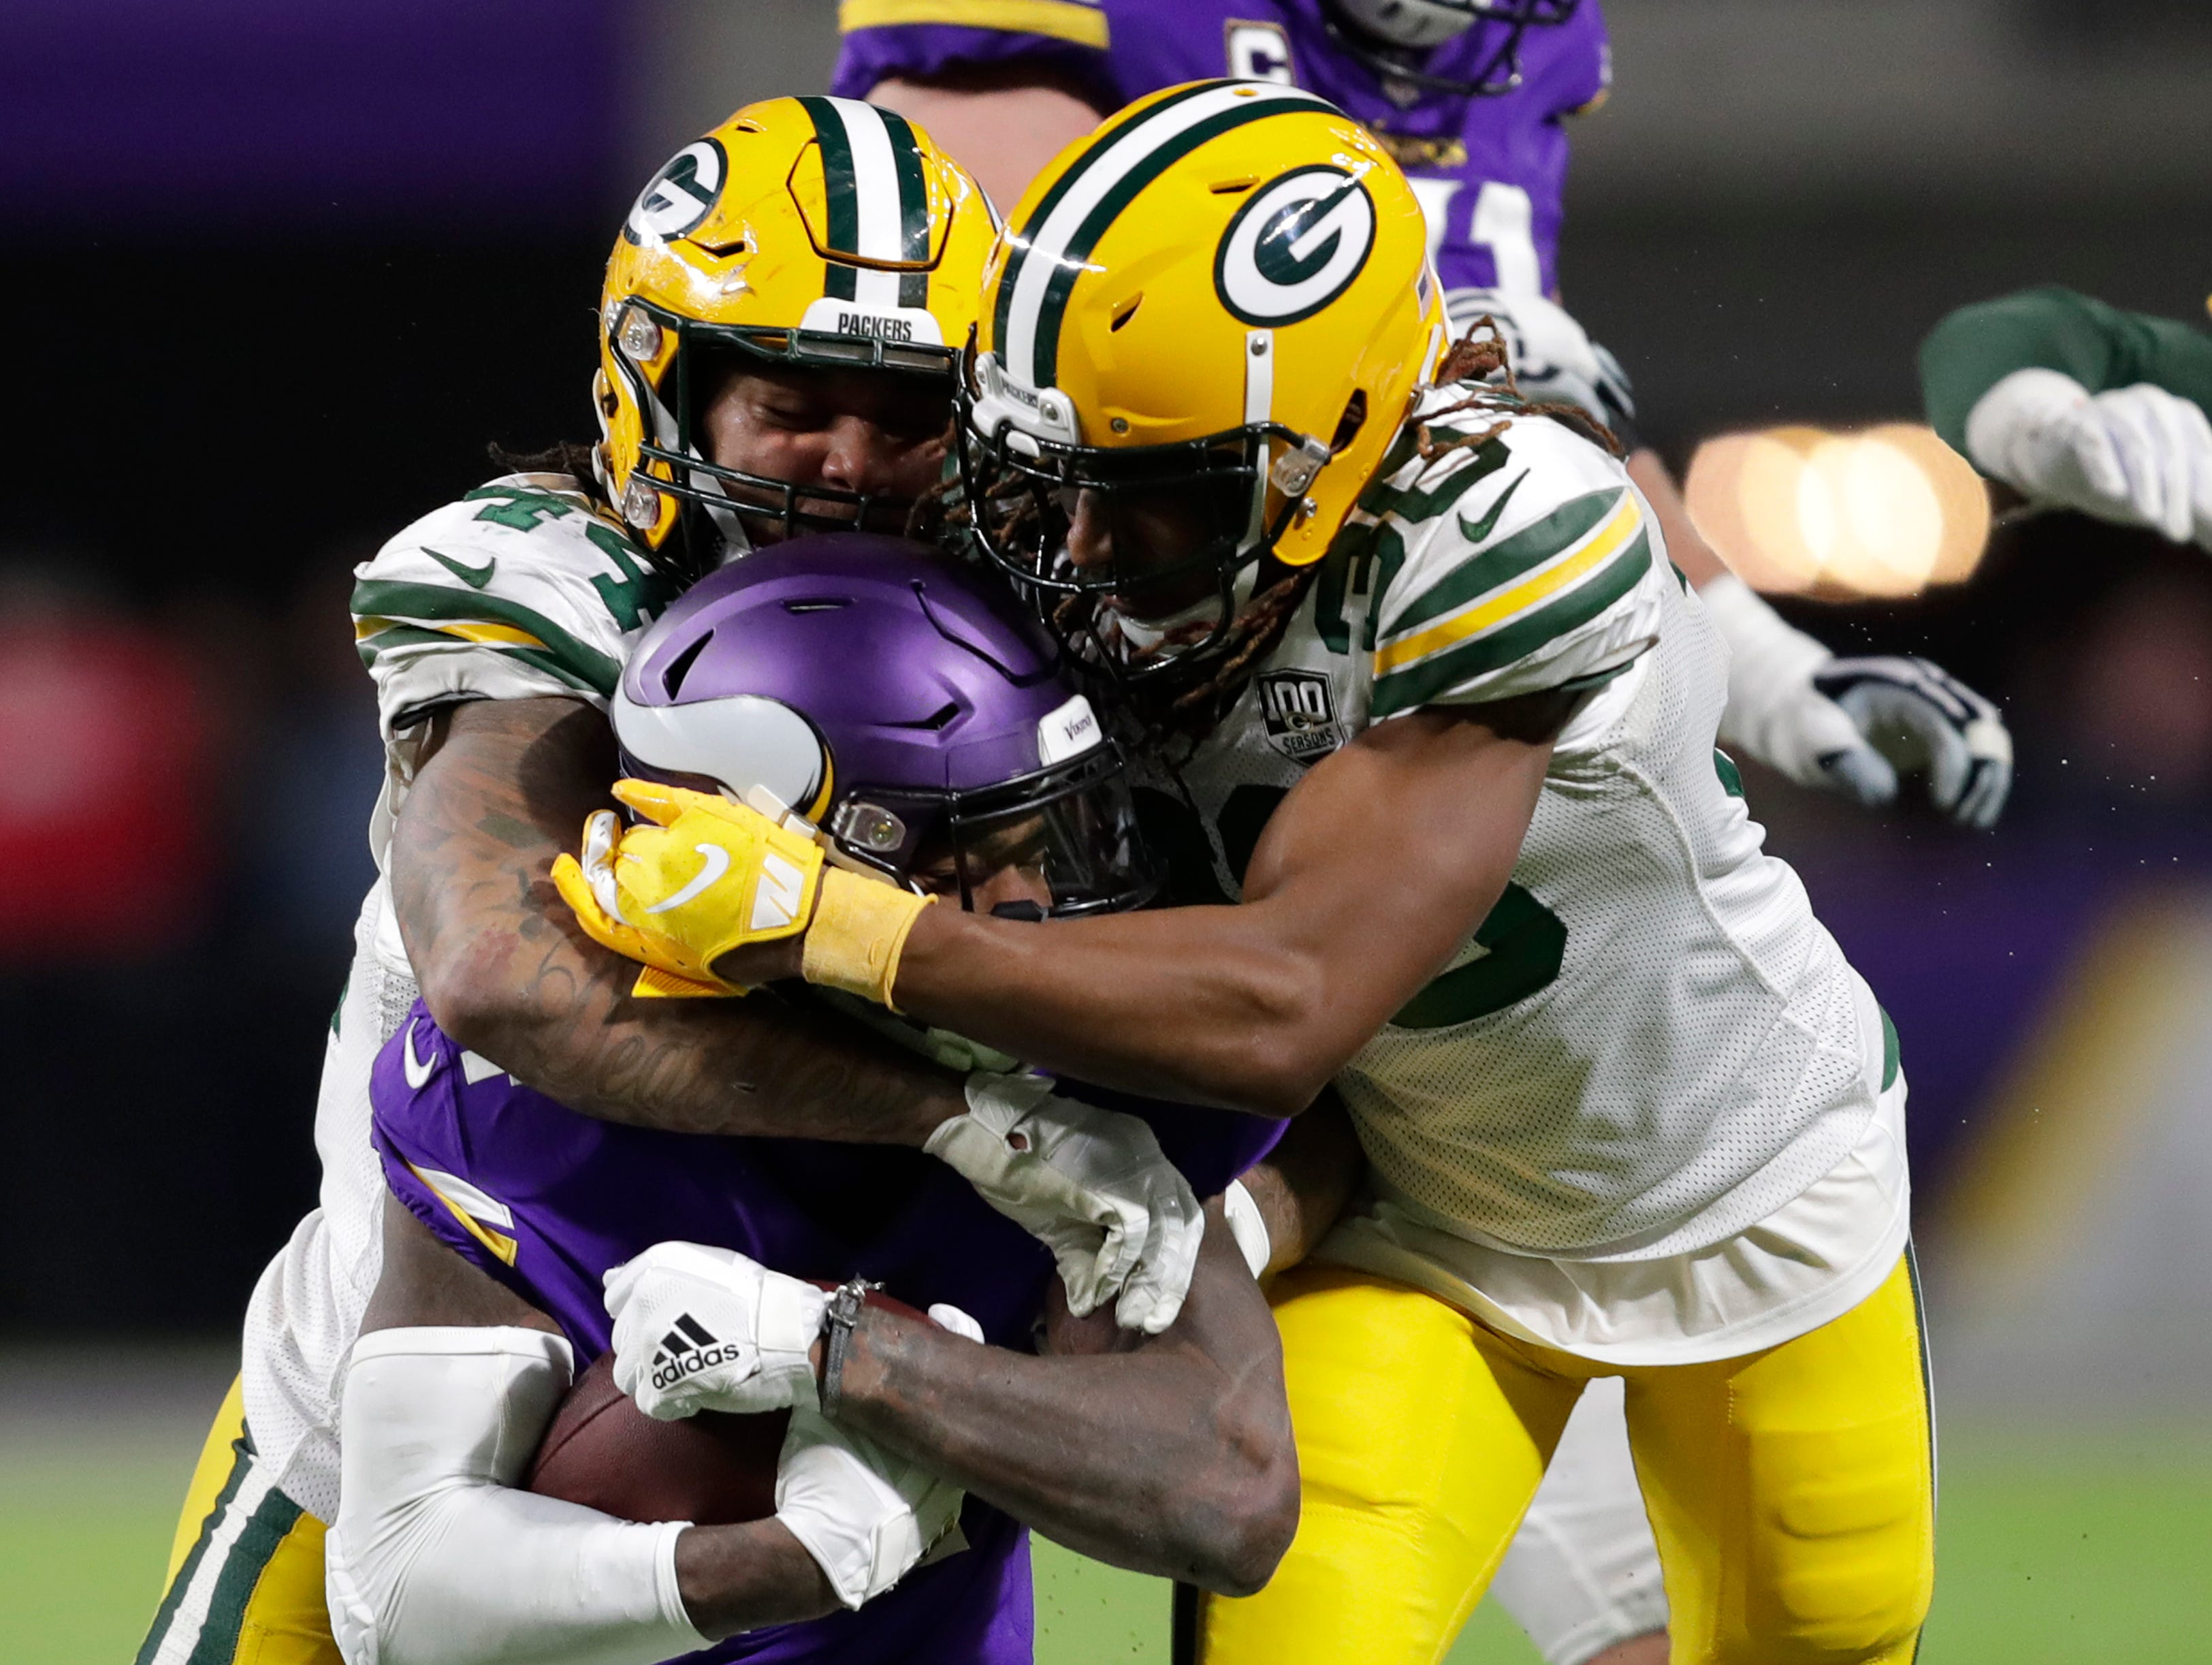 Green Bay Packers inside linebacker Antonio Morrison (44) and cornerback cornerback Tramon Williams (38) tackle Minnesota Vikings wide receiver Stefon Diggs (14) in the second half during their football game Sunday, November 25, 2018, at U.S. Bank Stadium in Minneapolis, Minn. 